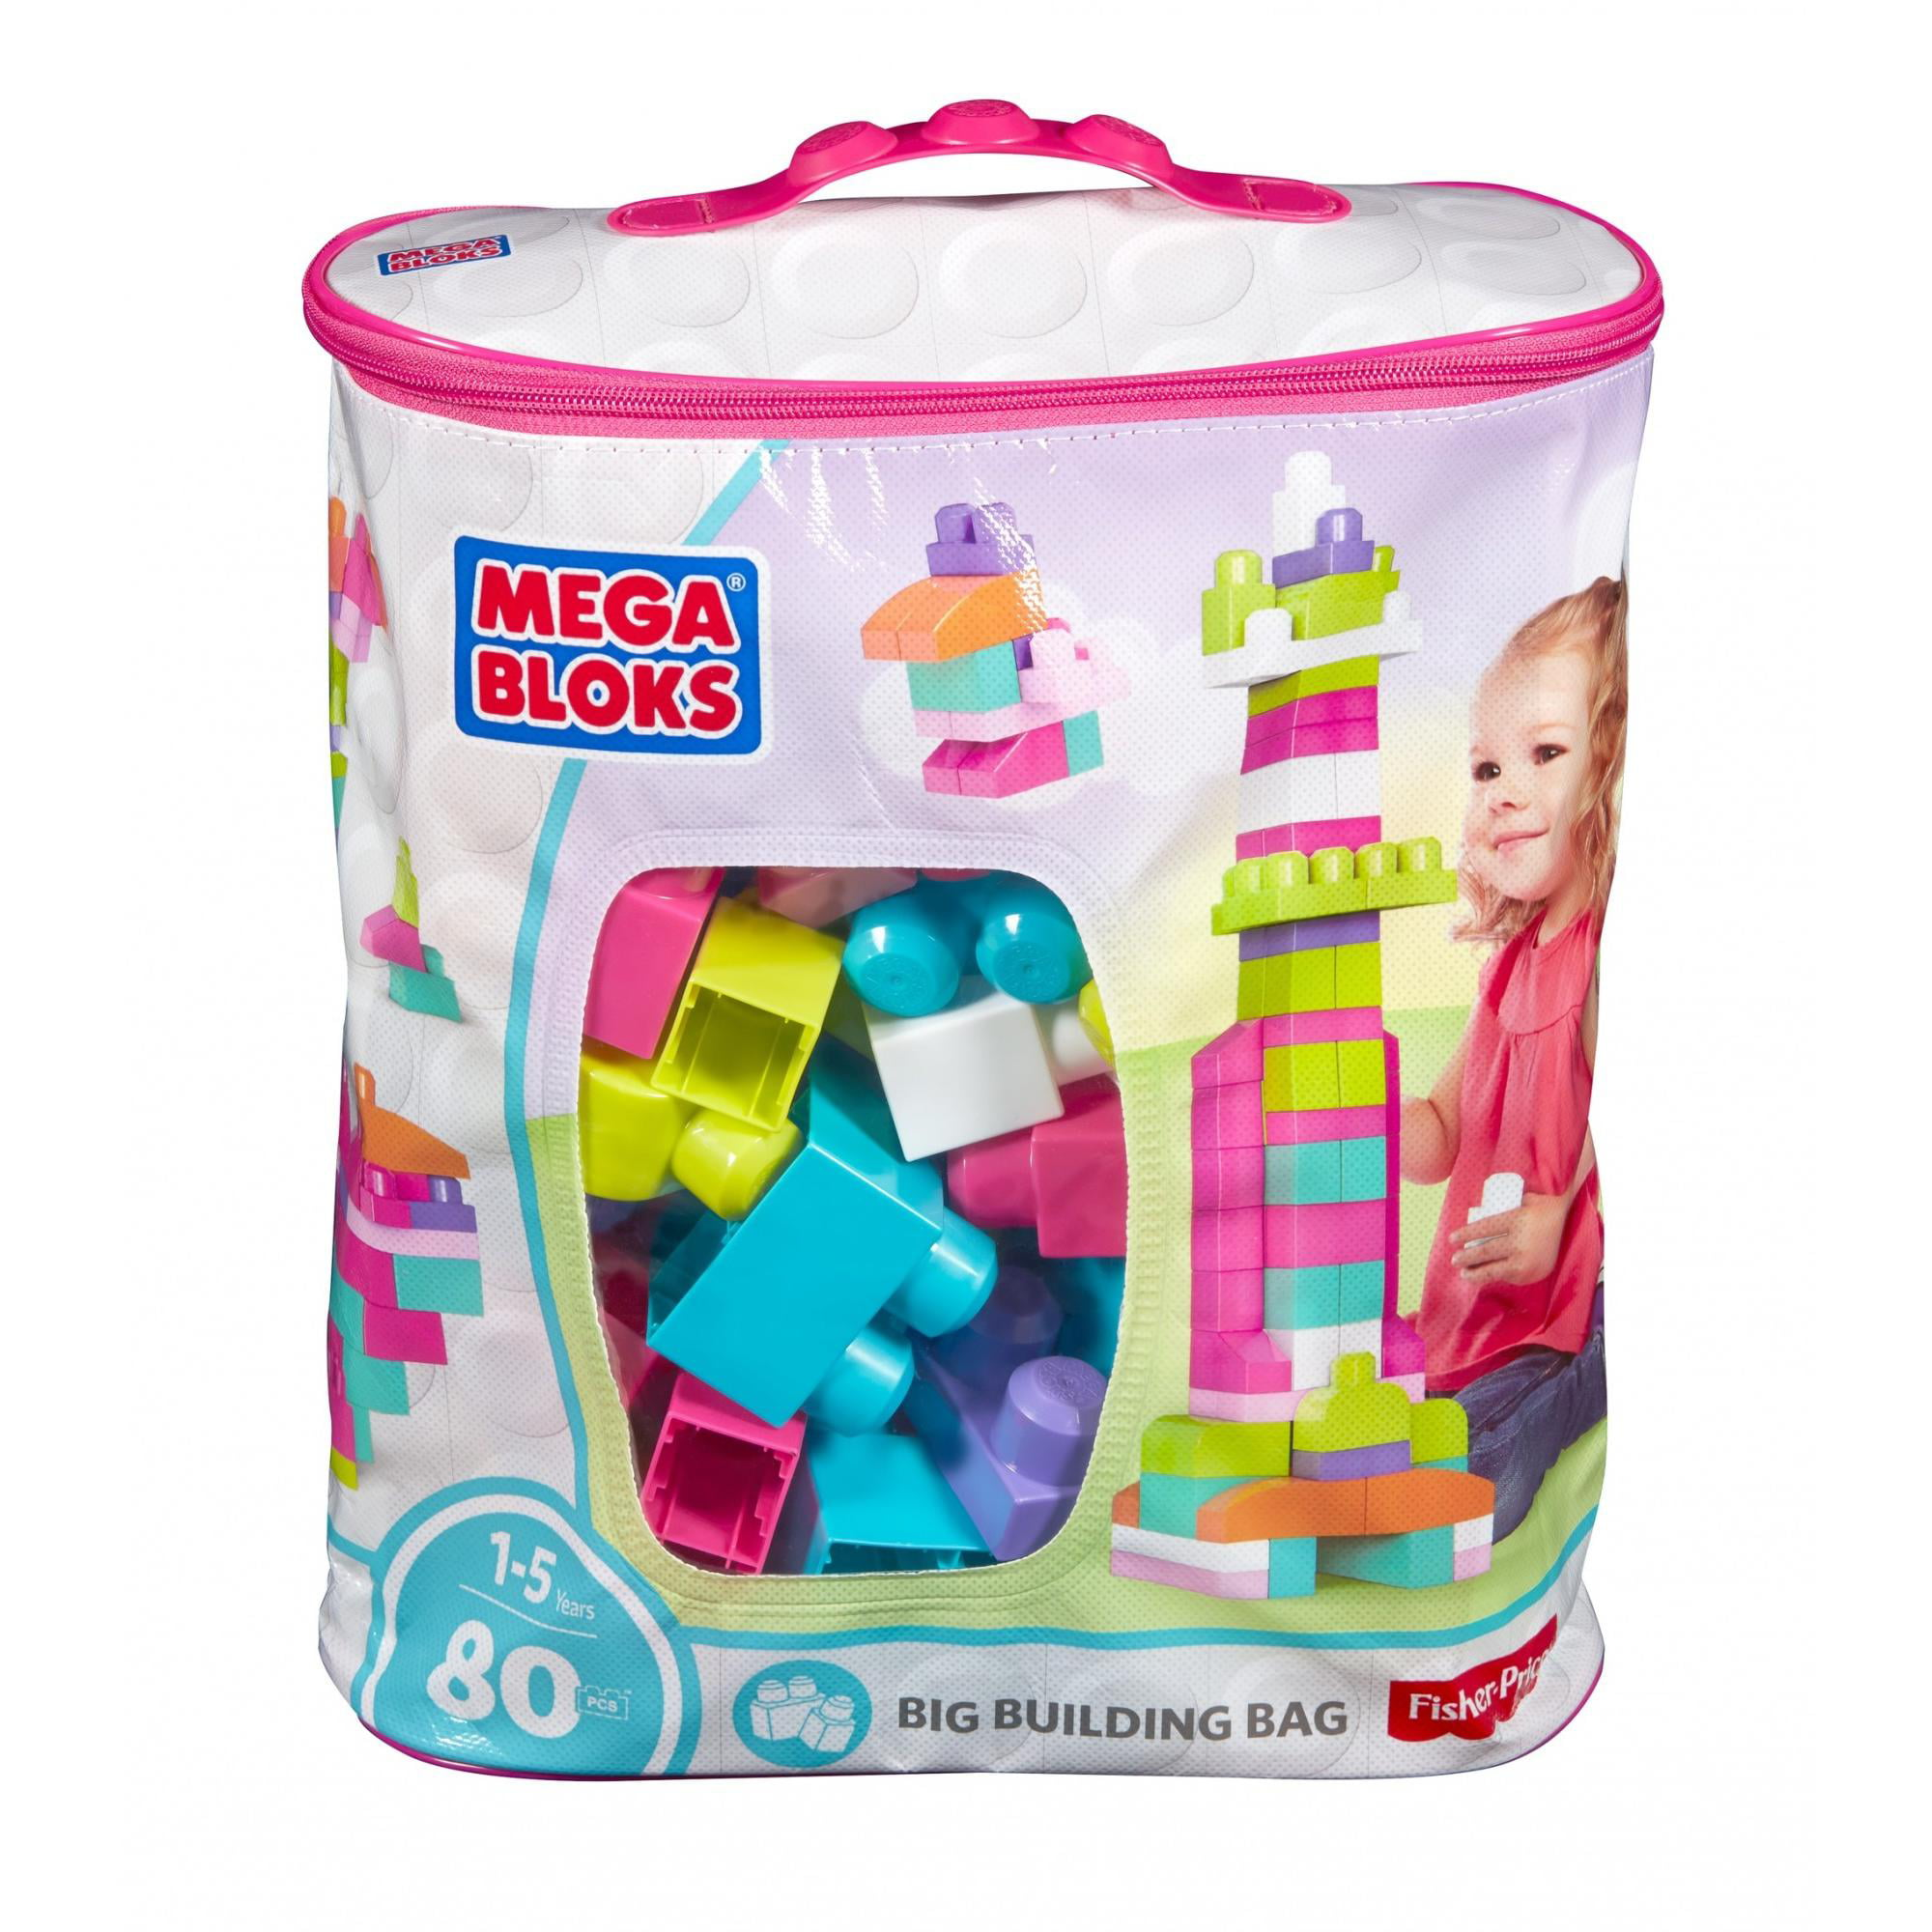 Mega Bloks First Builders Big Building Bag 80-Piece Classic Building Set (Pink) by Mega Brands